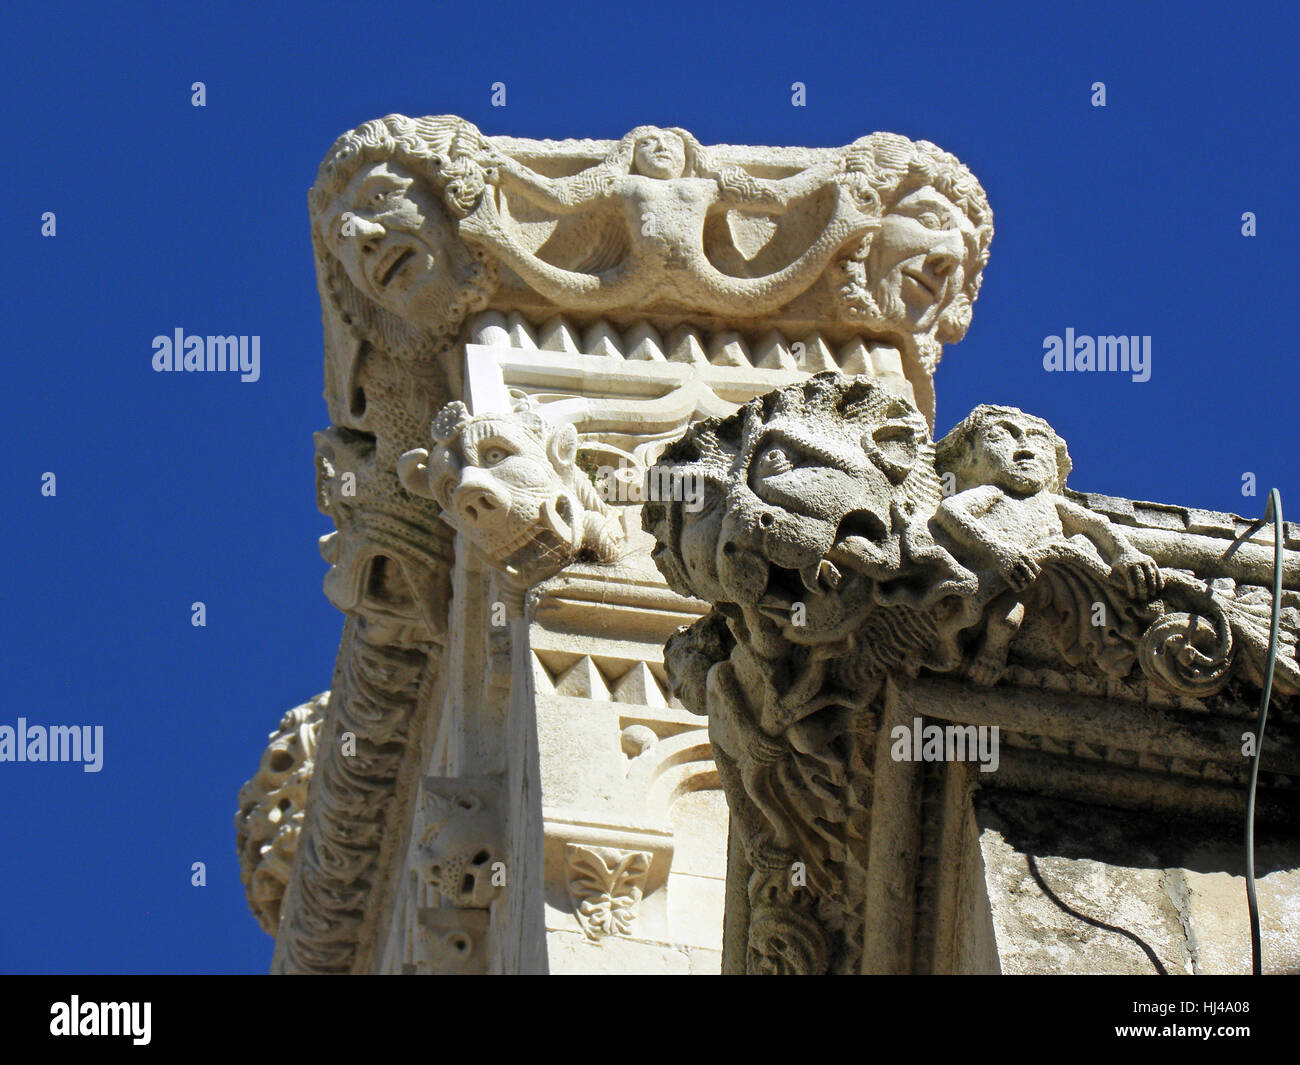 Korcula ancient artwork and craftmanship details,Croatia,Europe,13 - Stock Image